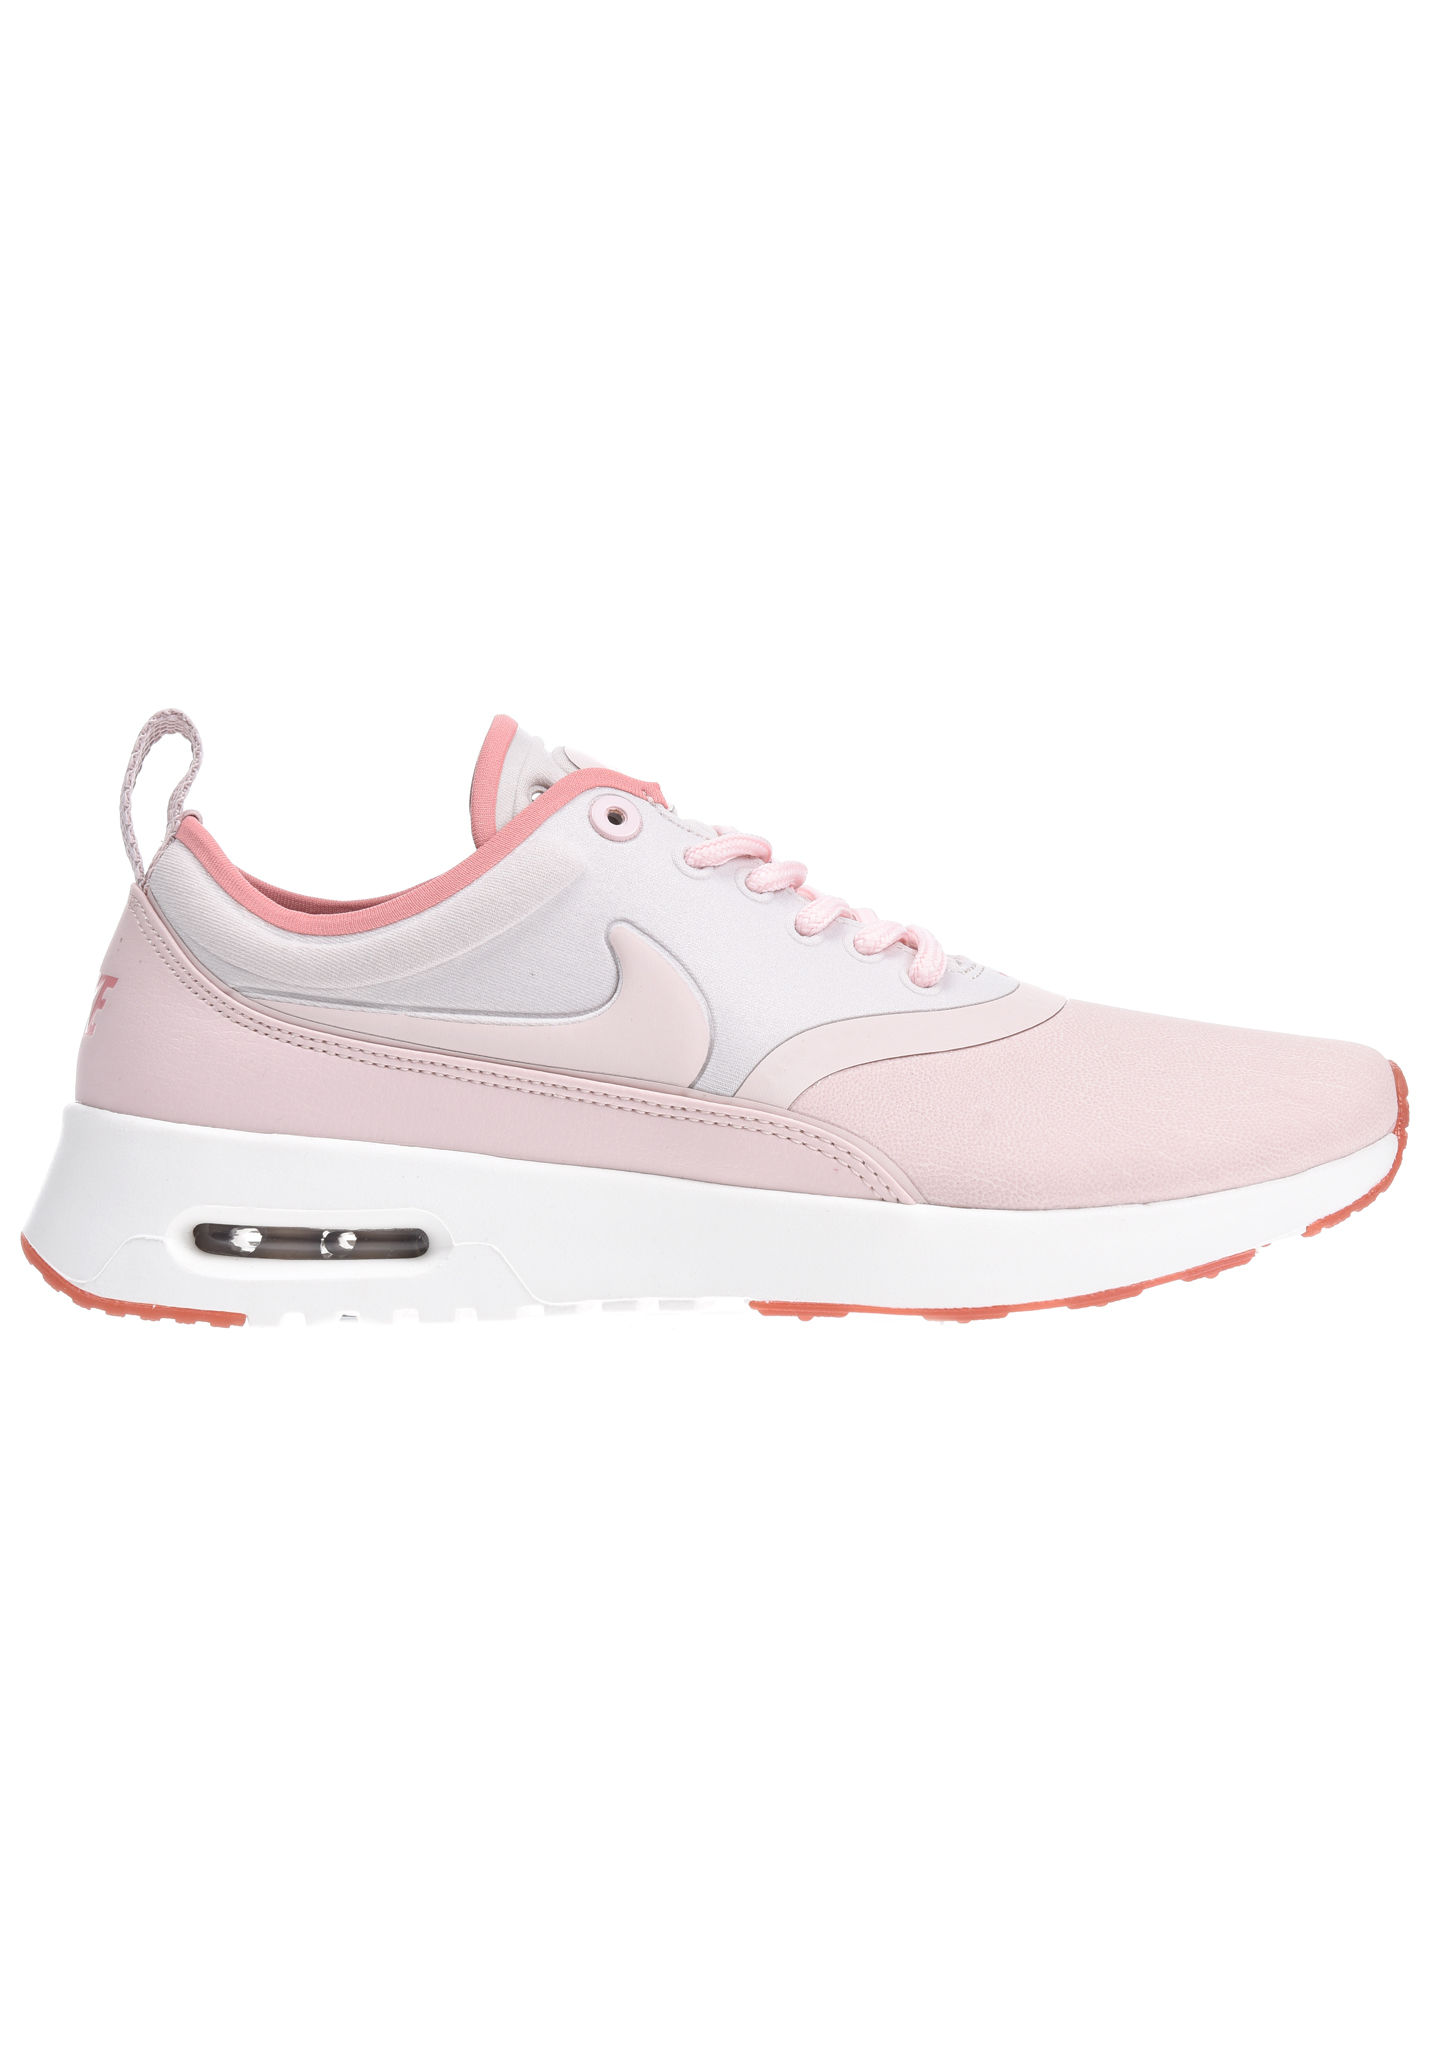 competitive price 2e527 b8e0d NIKE SPORTSWEAR Air Max Thea Ultra Premium - Sneakers voor Dames - Roze -  Planet Sports